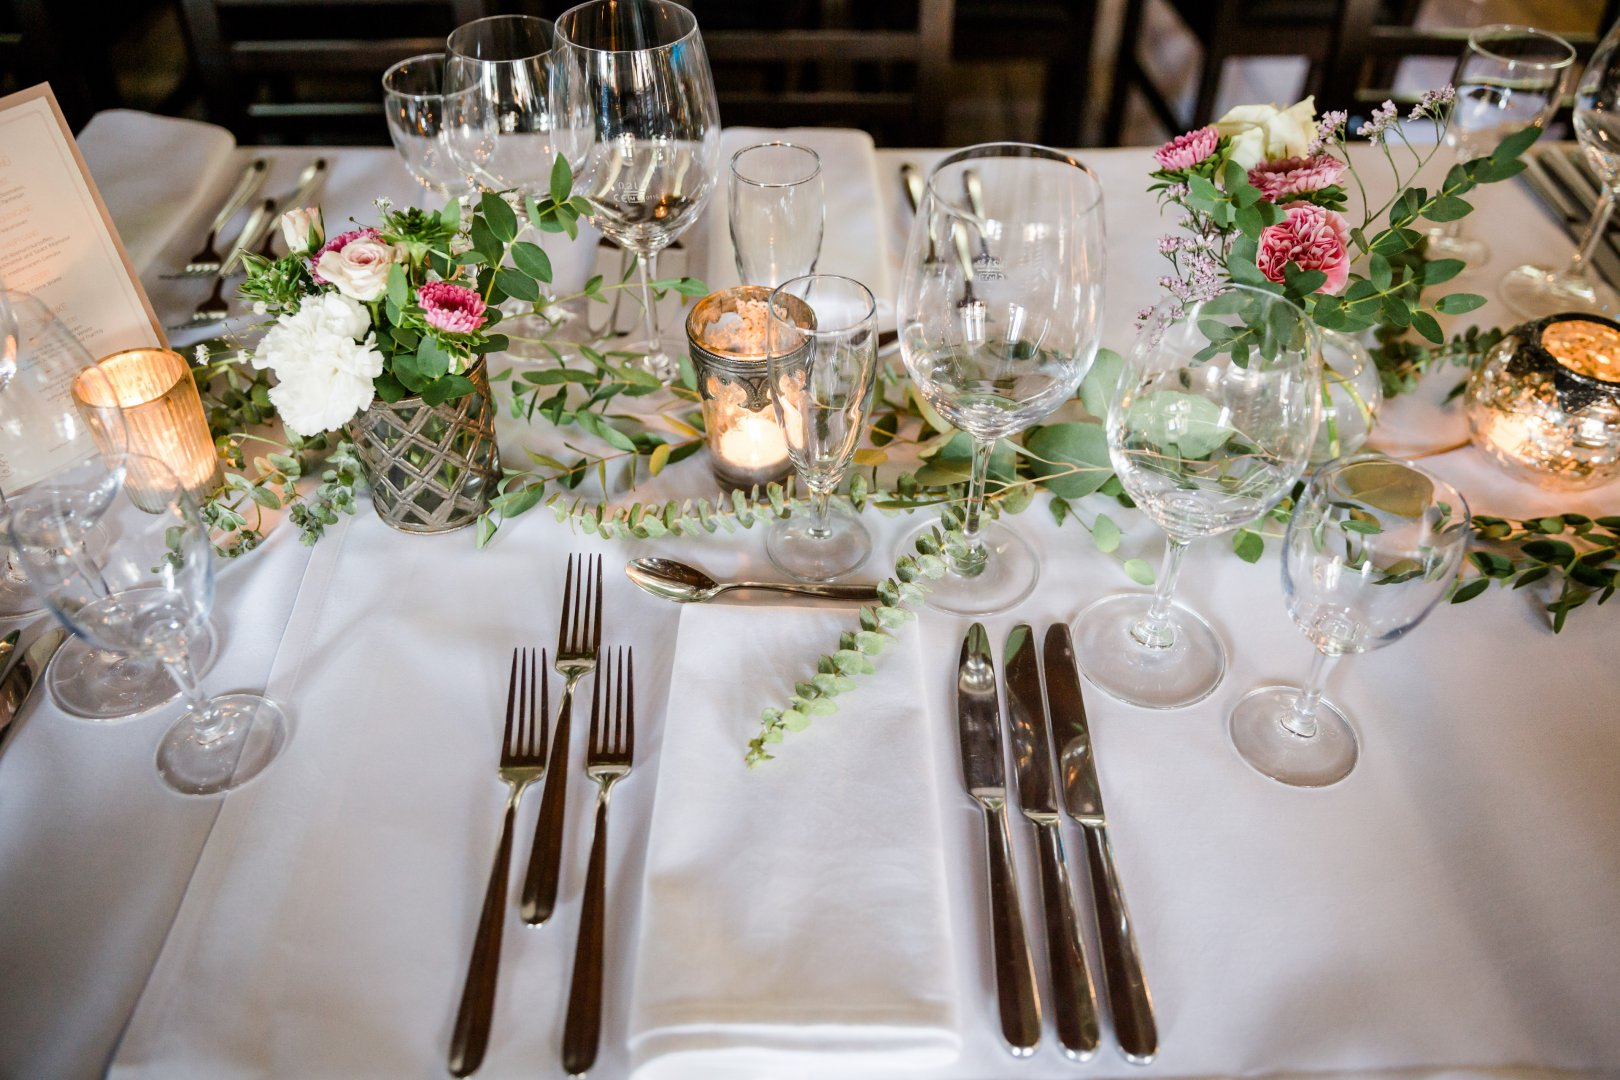 Wedding banquet Decoration Centrepiece Rehearsal dinner Table Champagne stemware Tableware Tablecloth Flower Arranging Textile Floral design Event Flower Function hall Floristry Restaurant Wedding reception Ceremony Banquet Plant Interior design Glass Stemware Linens Furniture Interior design Party Cut flowers